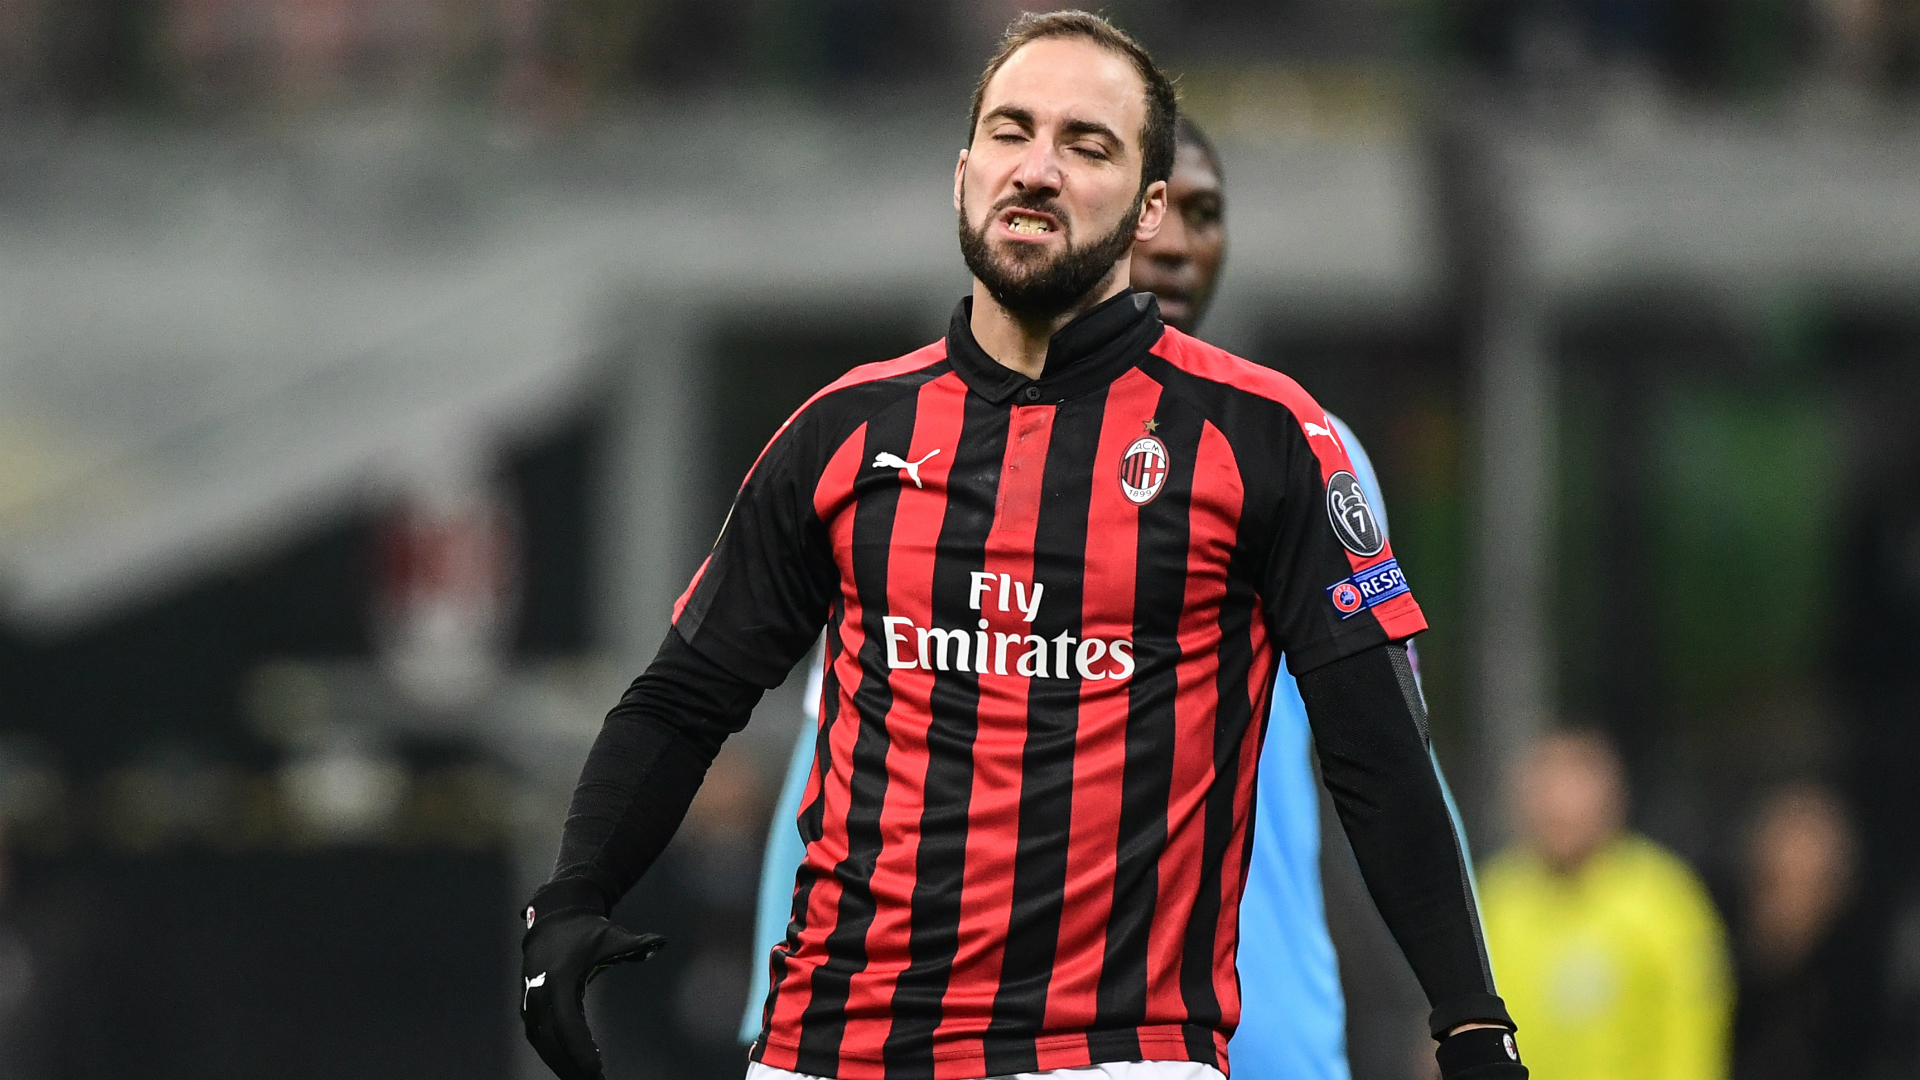 AC Milan chief Leonardo admits frustration with Chelsea target Higuain